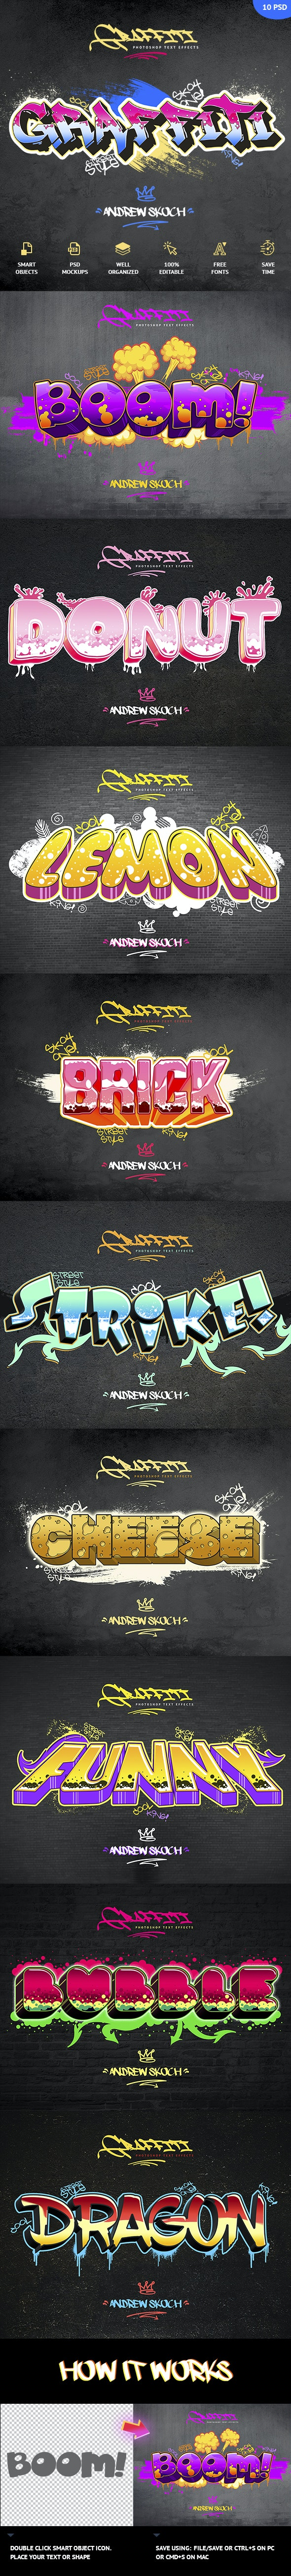 Graffiti Text Effects - 10 PSD - vol 2 - Text Effects Actions